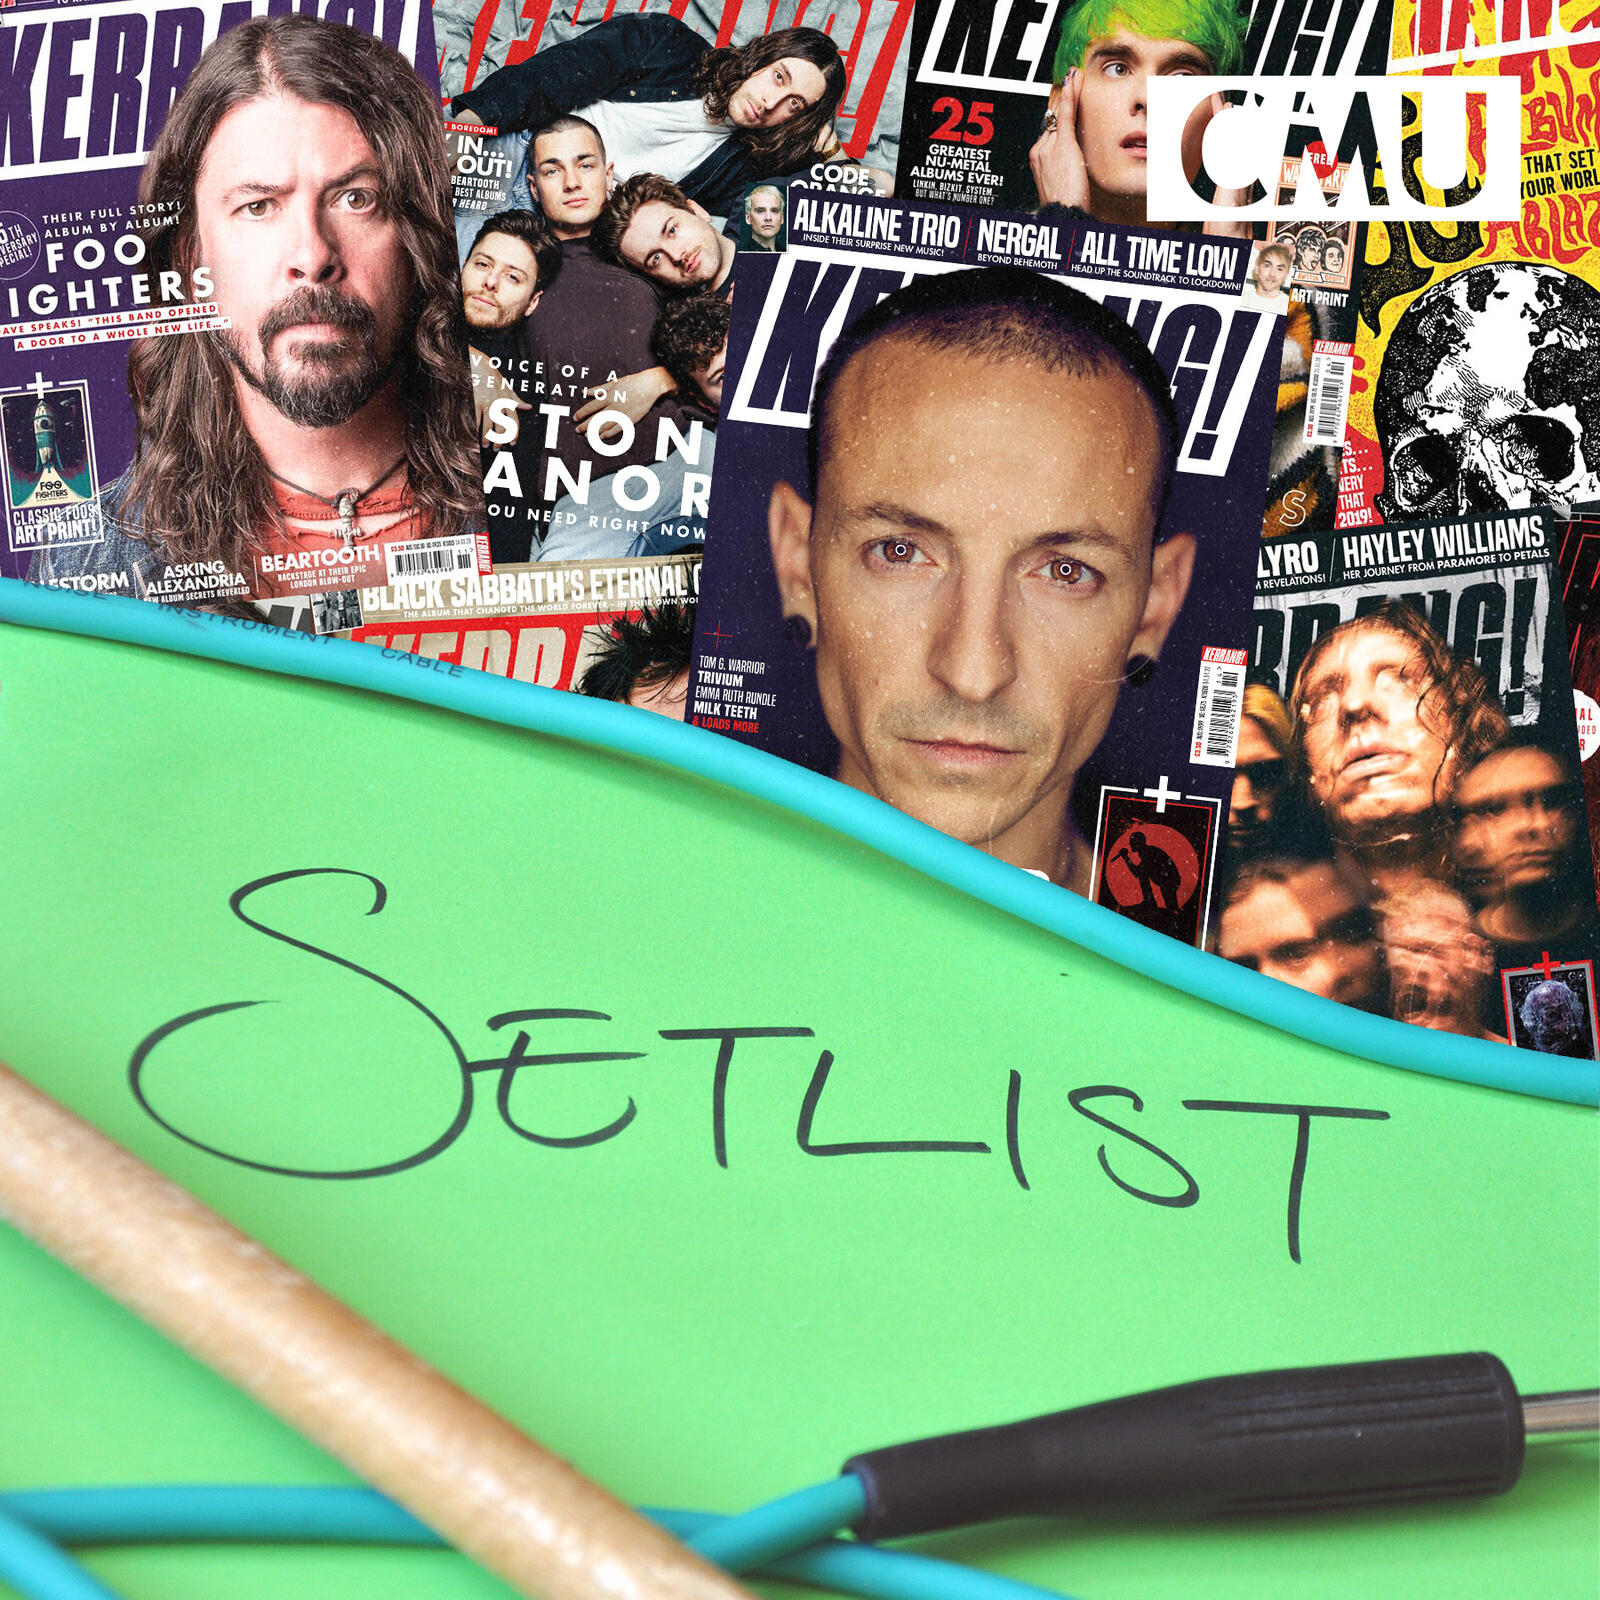 Music magazines stay off the shelves